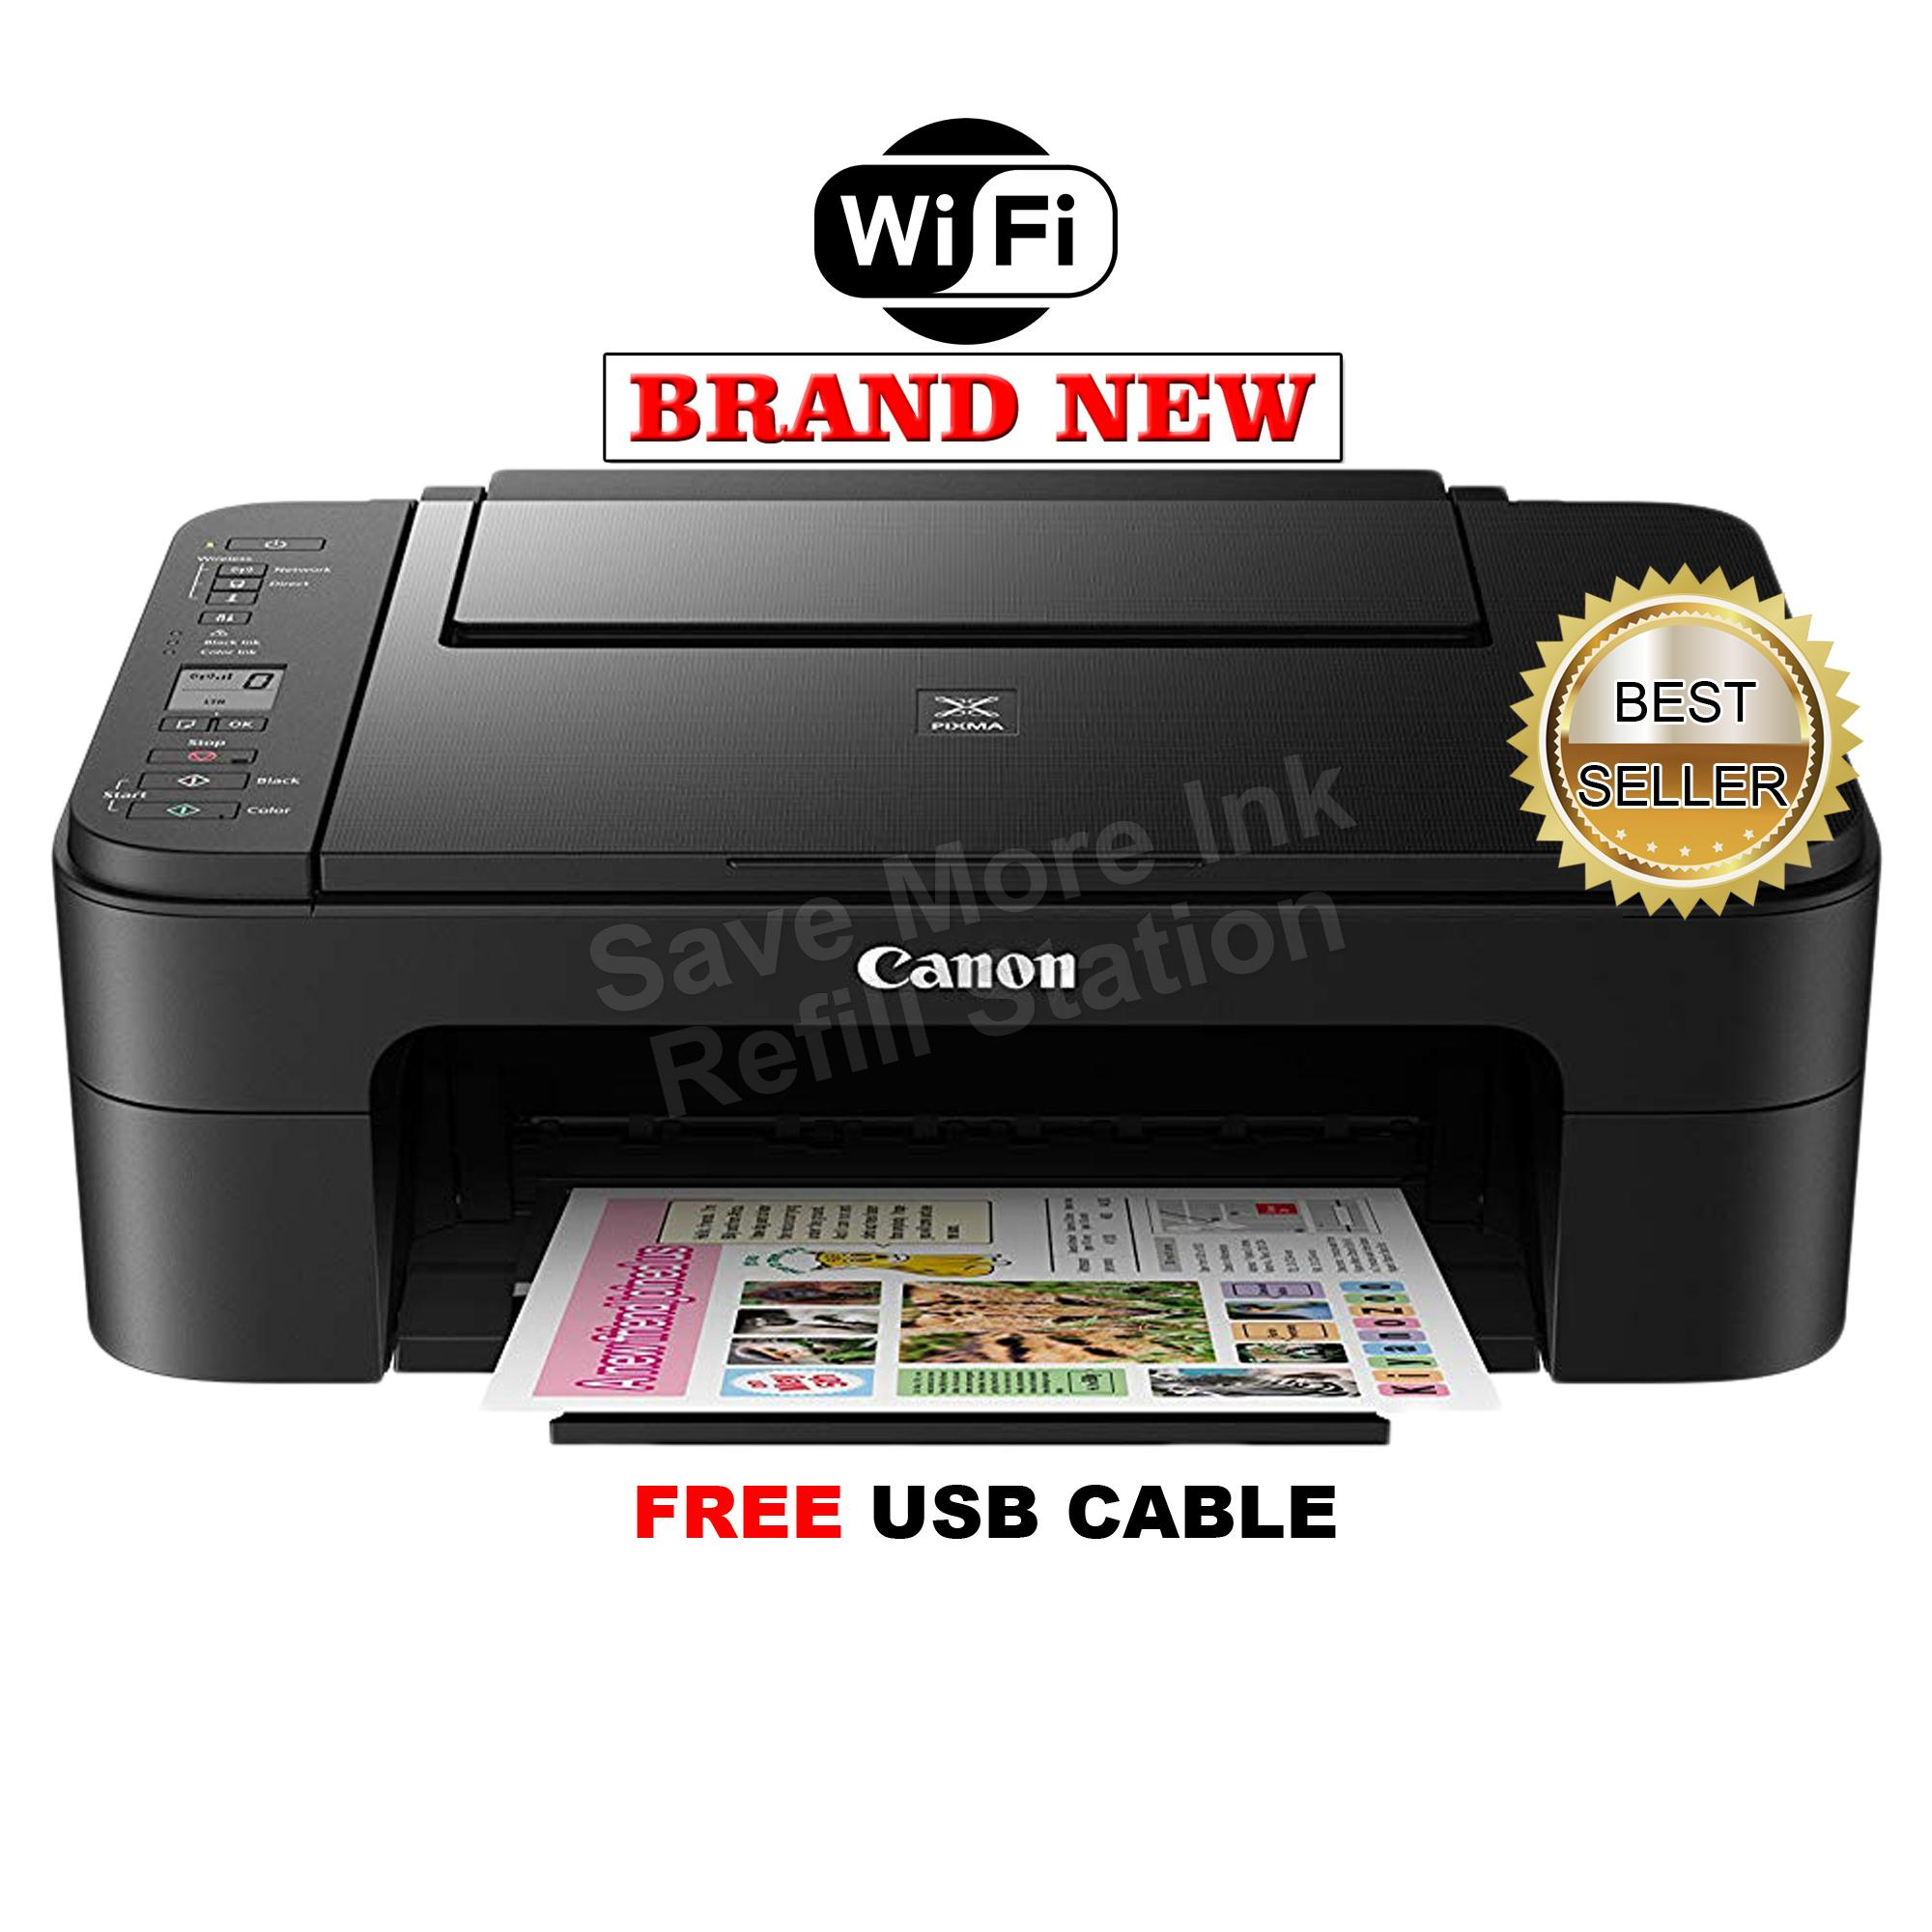 Printers For Sale Computer Prices Brands Specs In Cartridge Tinta Printer Hp 802 Colour Original Ink Jet